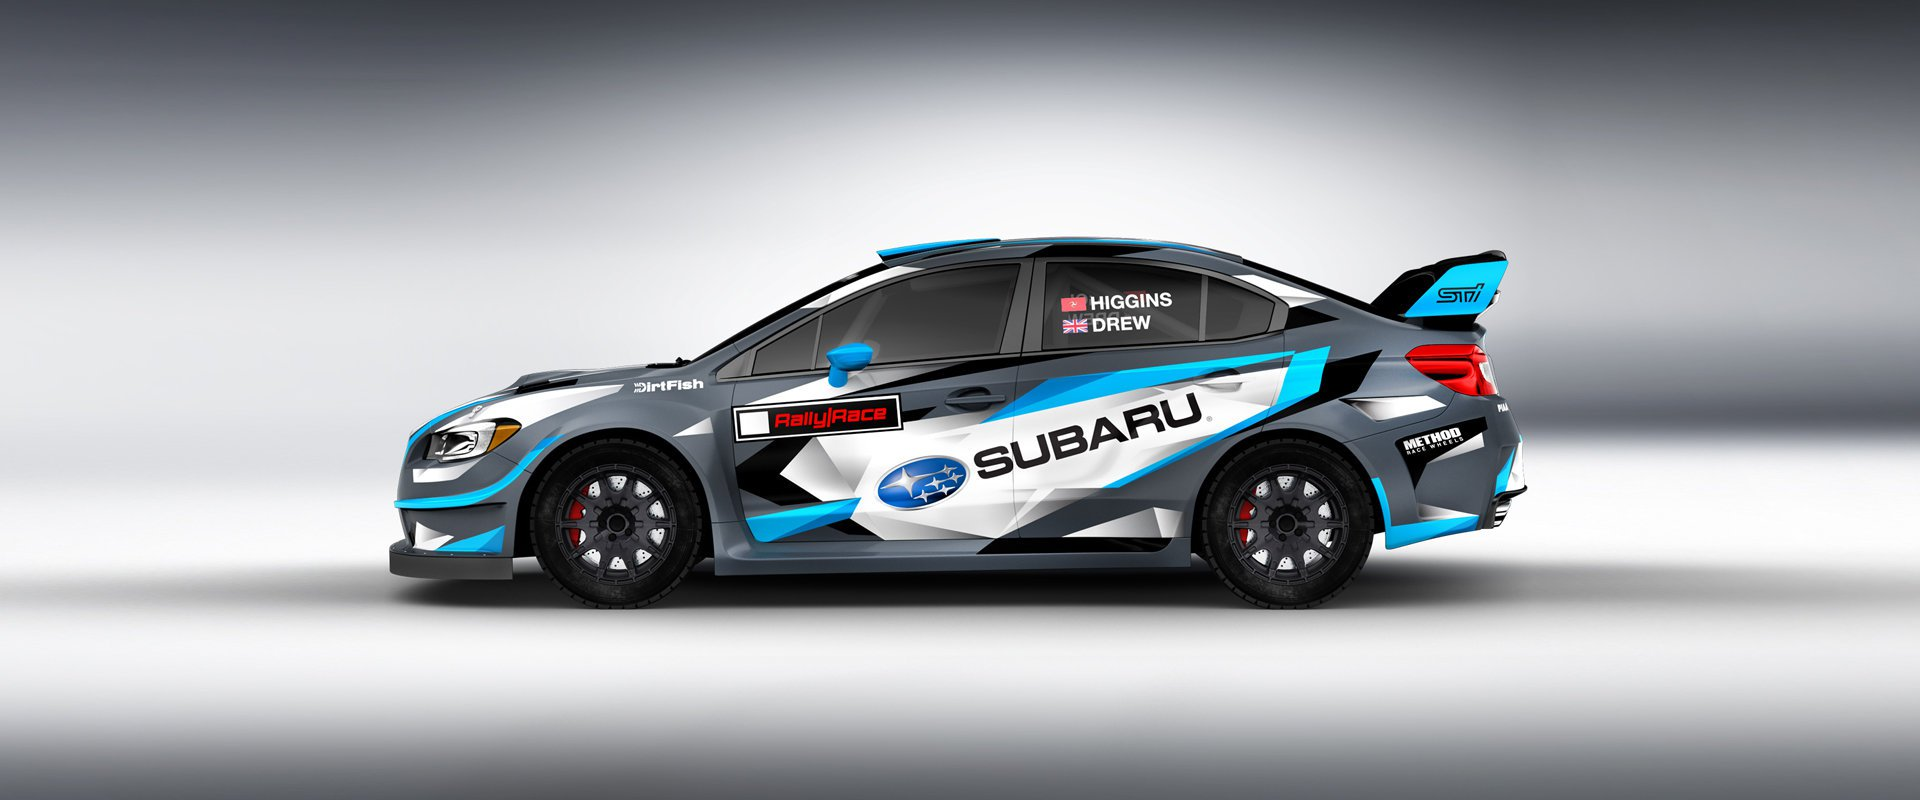 Subaru Rally Team USA #3